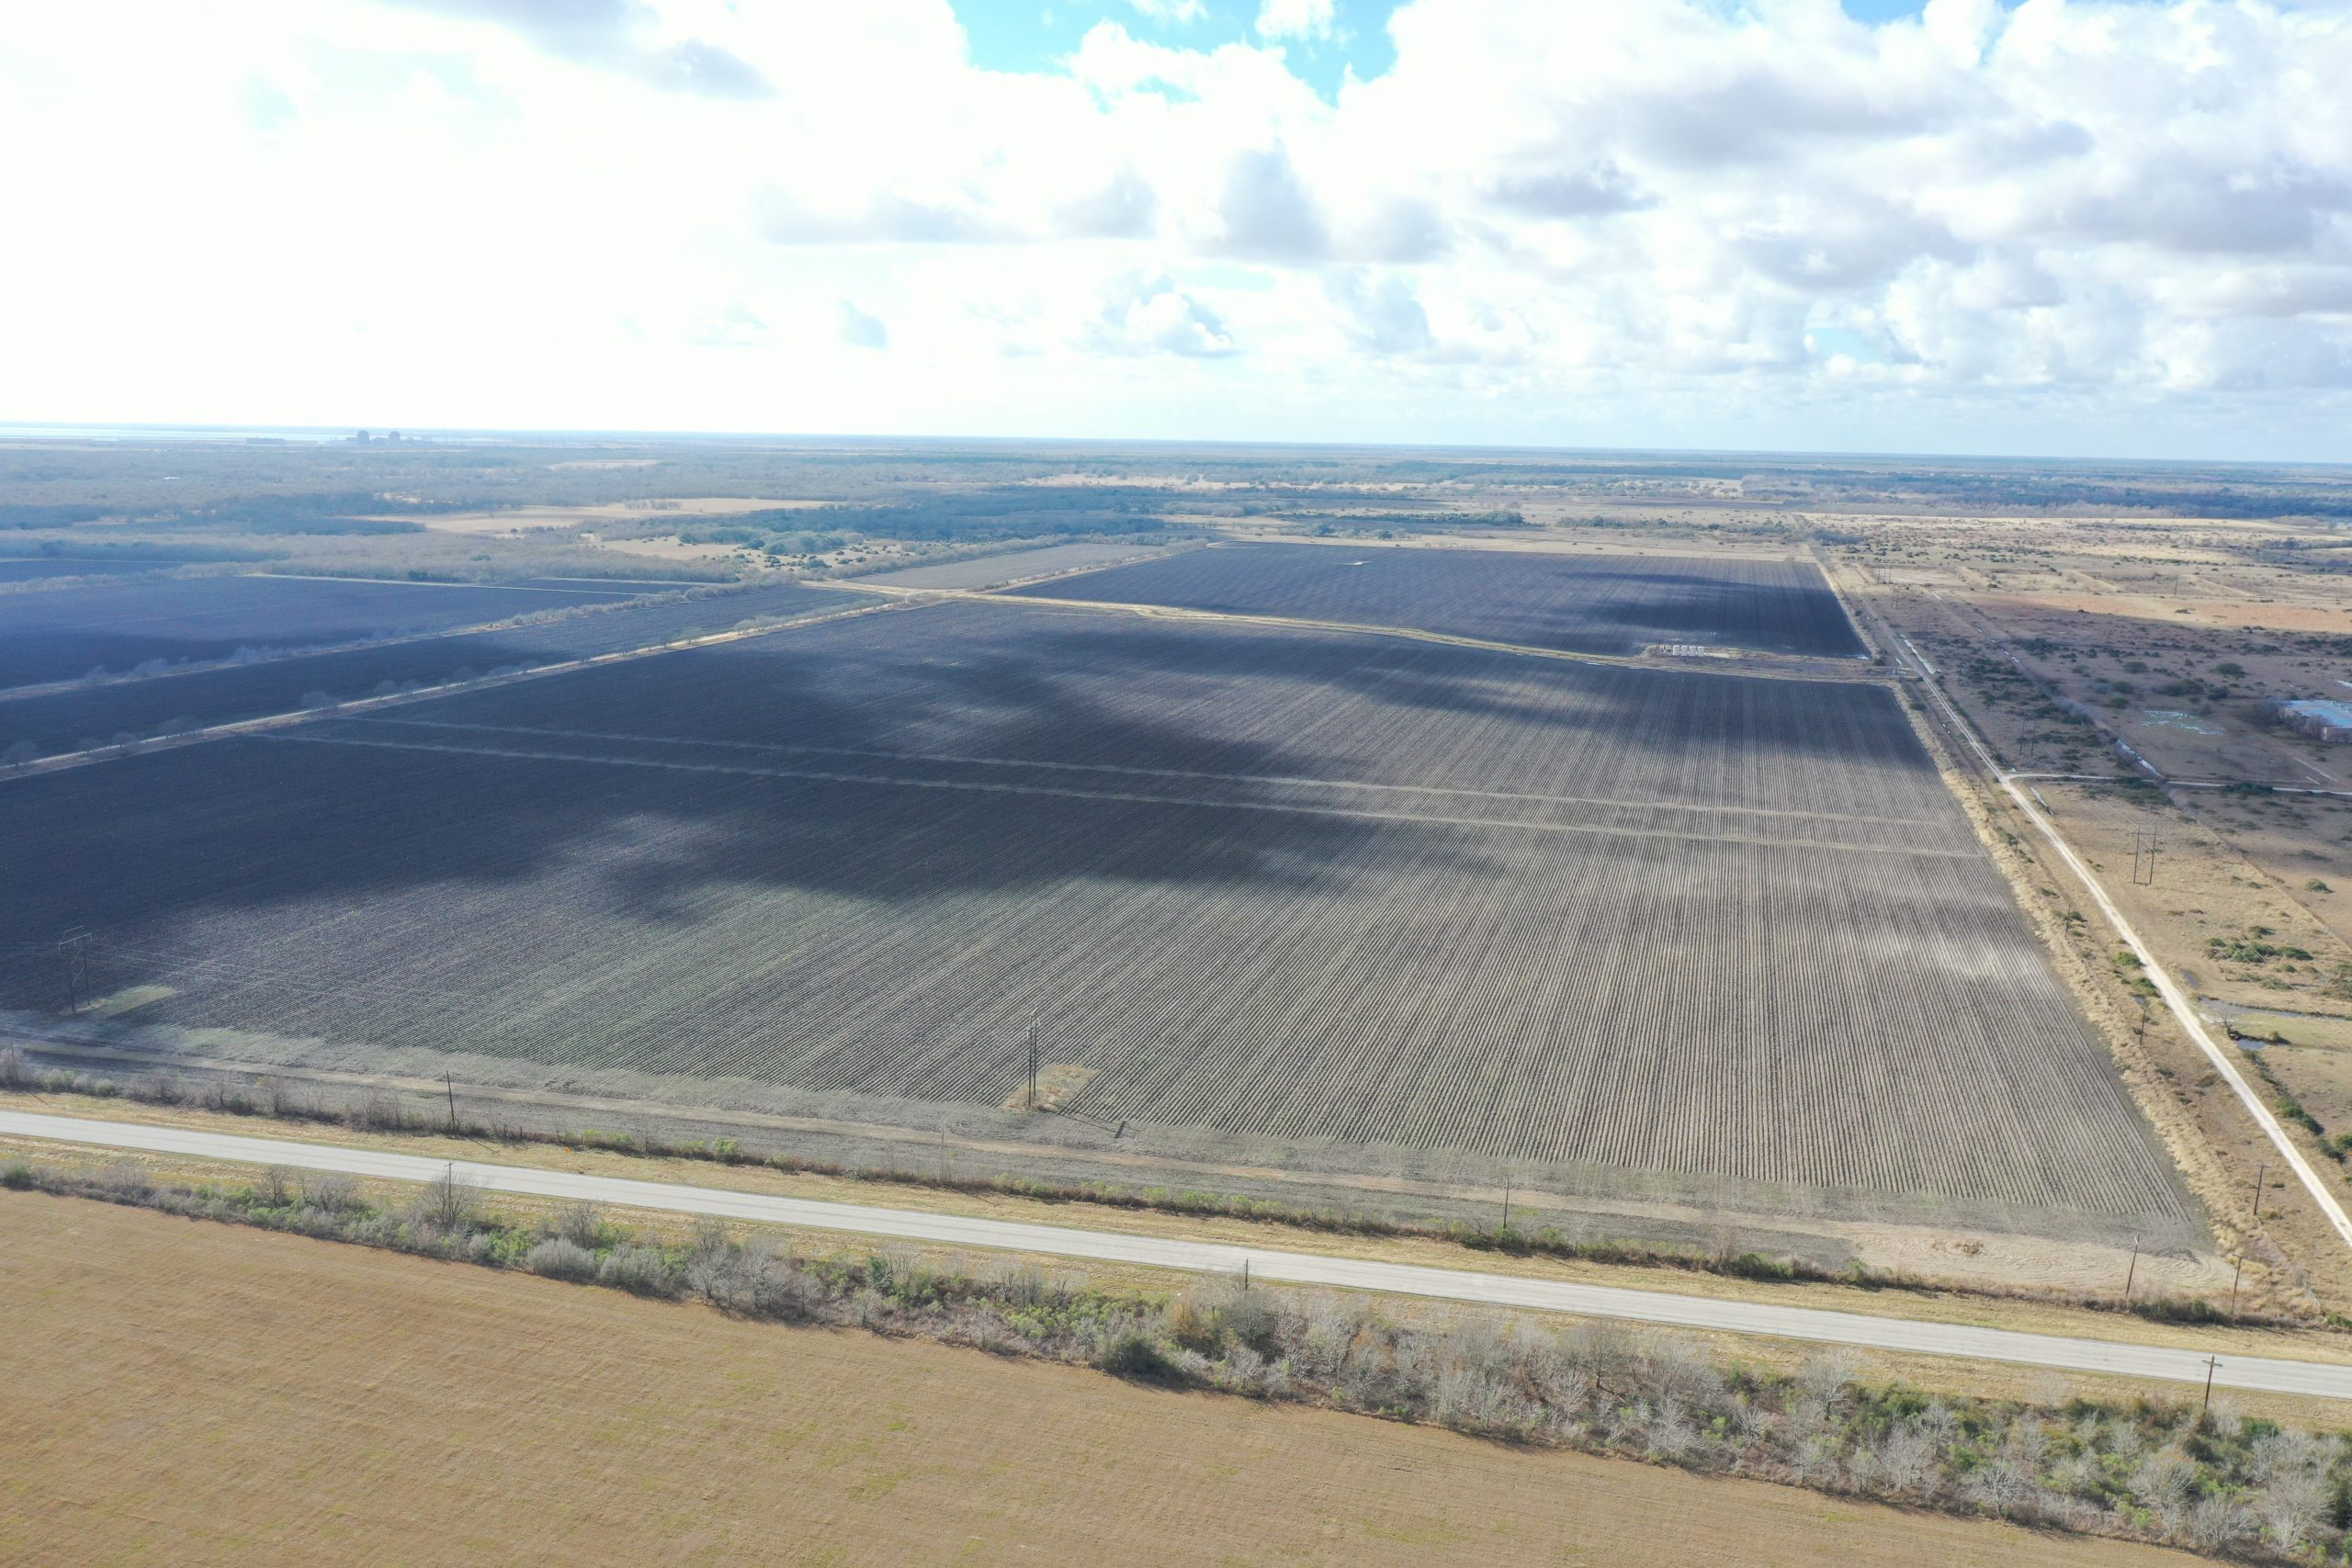 1,253 Acre Industrial Site in Matagorda County